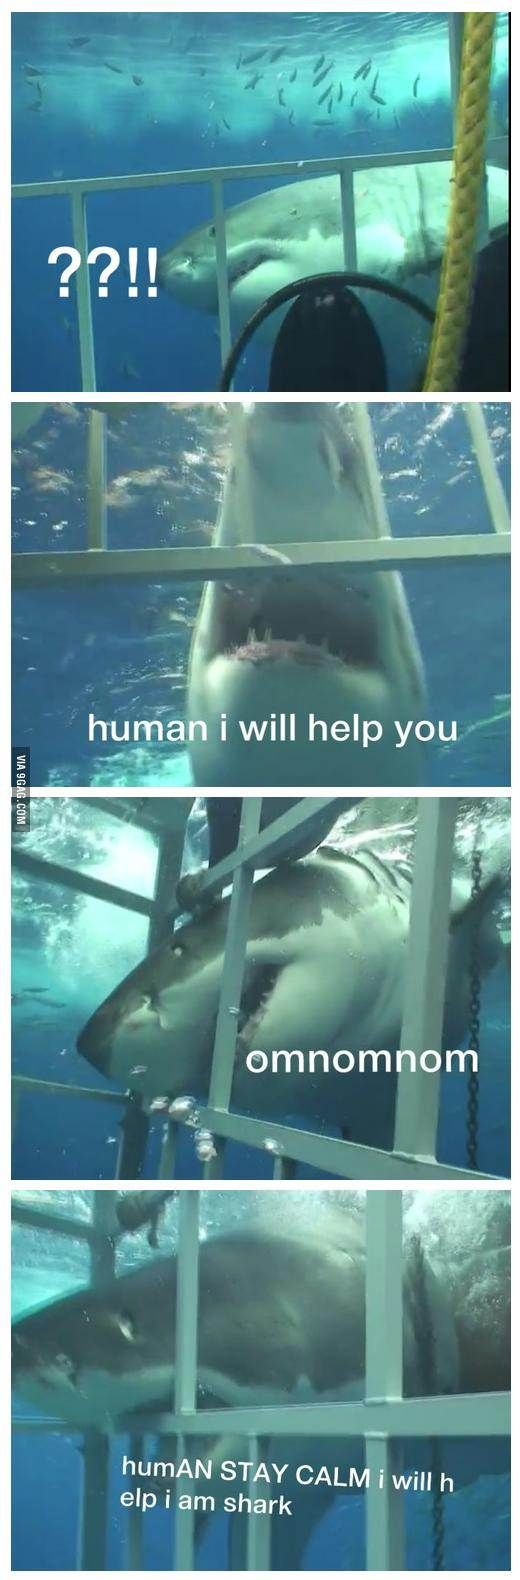 34 best sharks because sharks images on pinterest animal